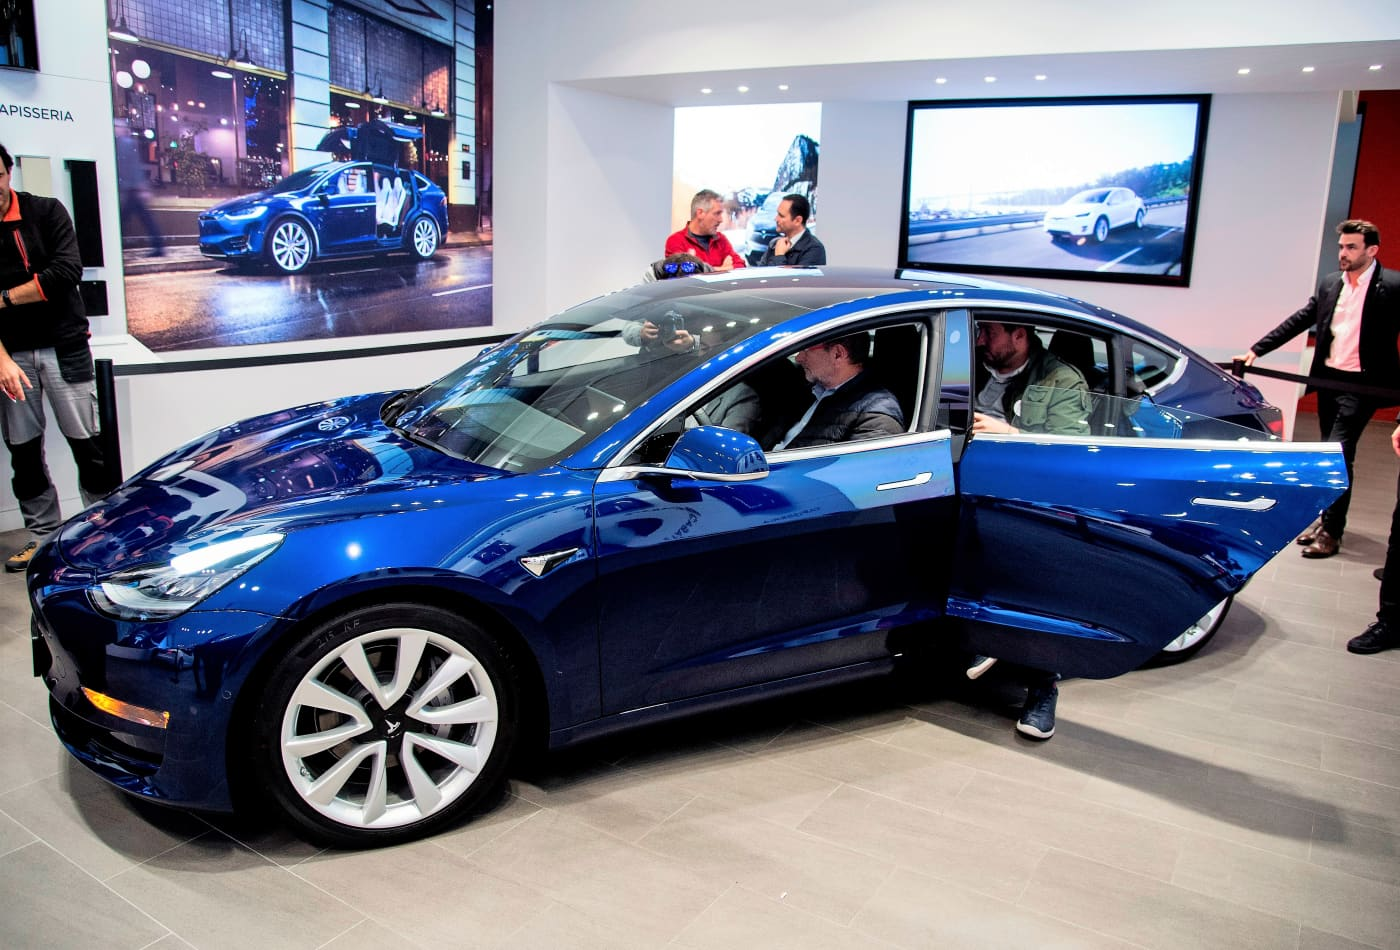 Here's what buying $55,000 worth of Tesla stock teaches us about the hidden cost of big investments